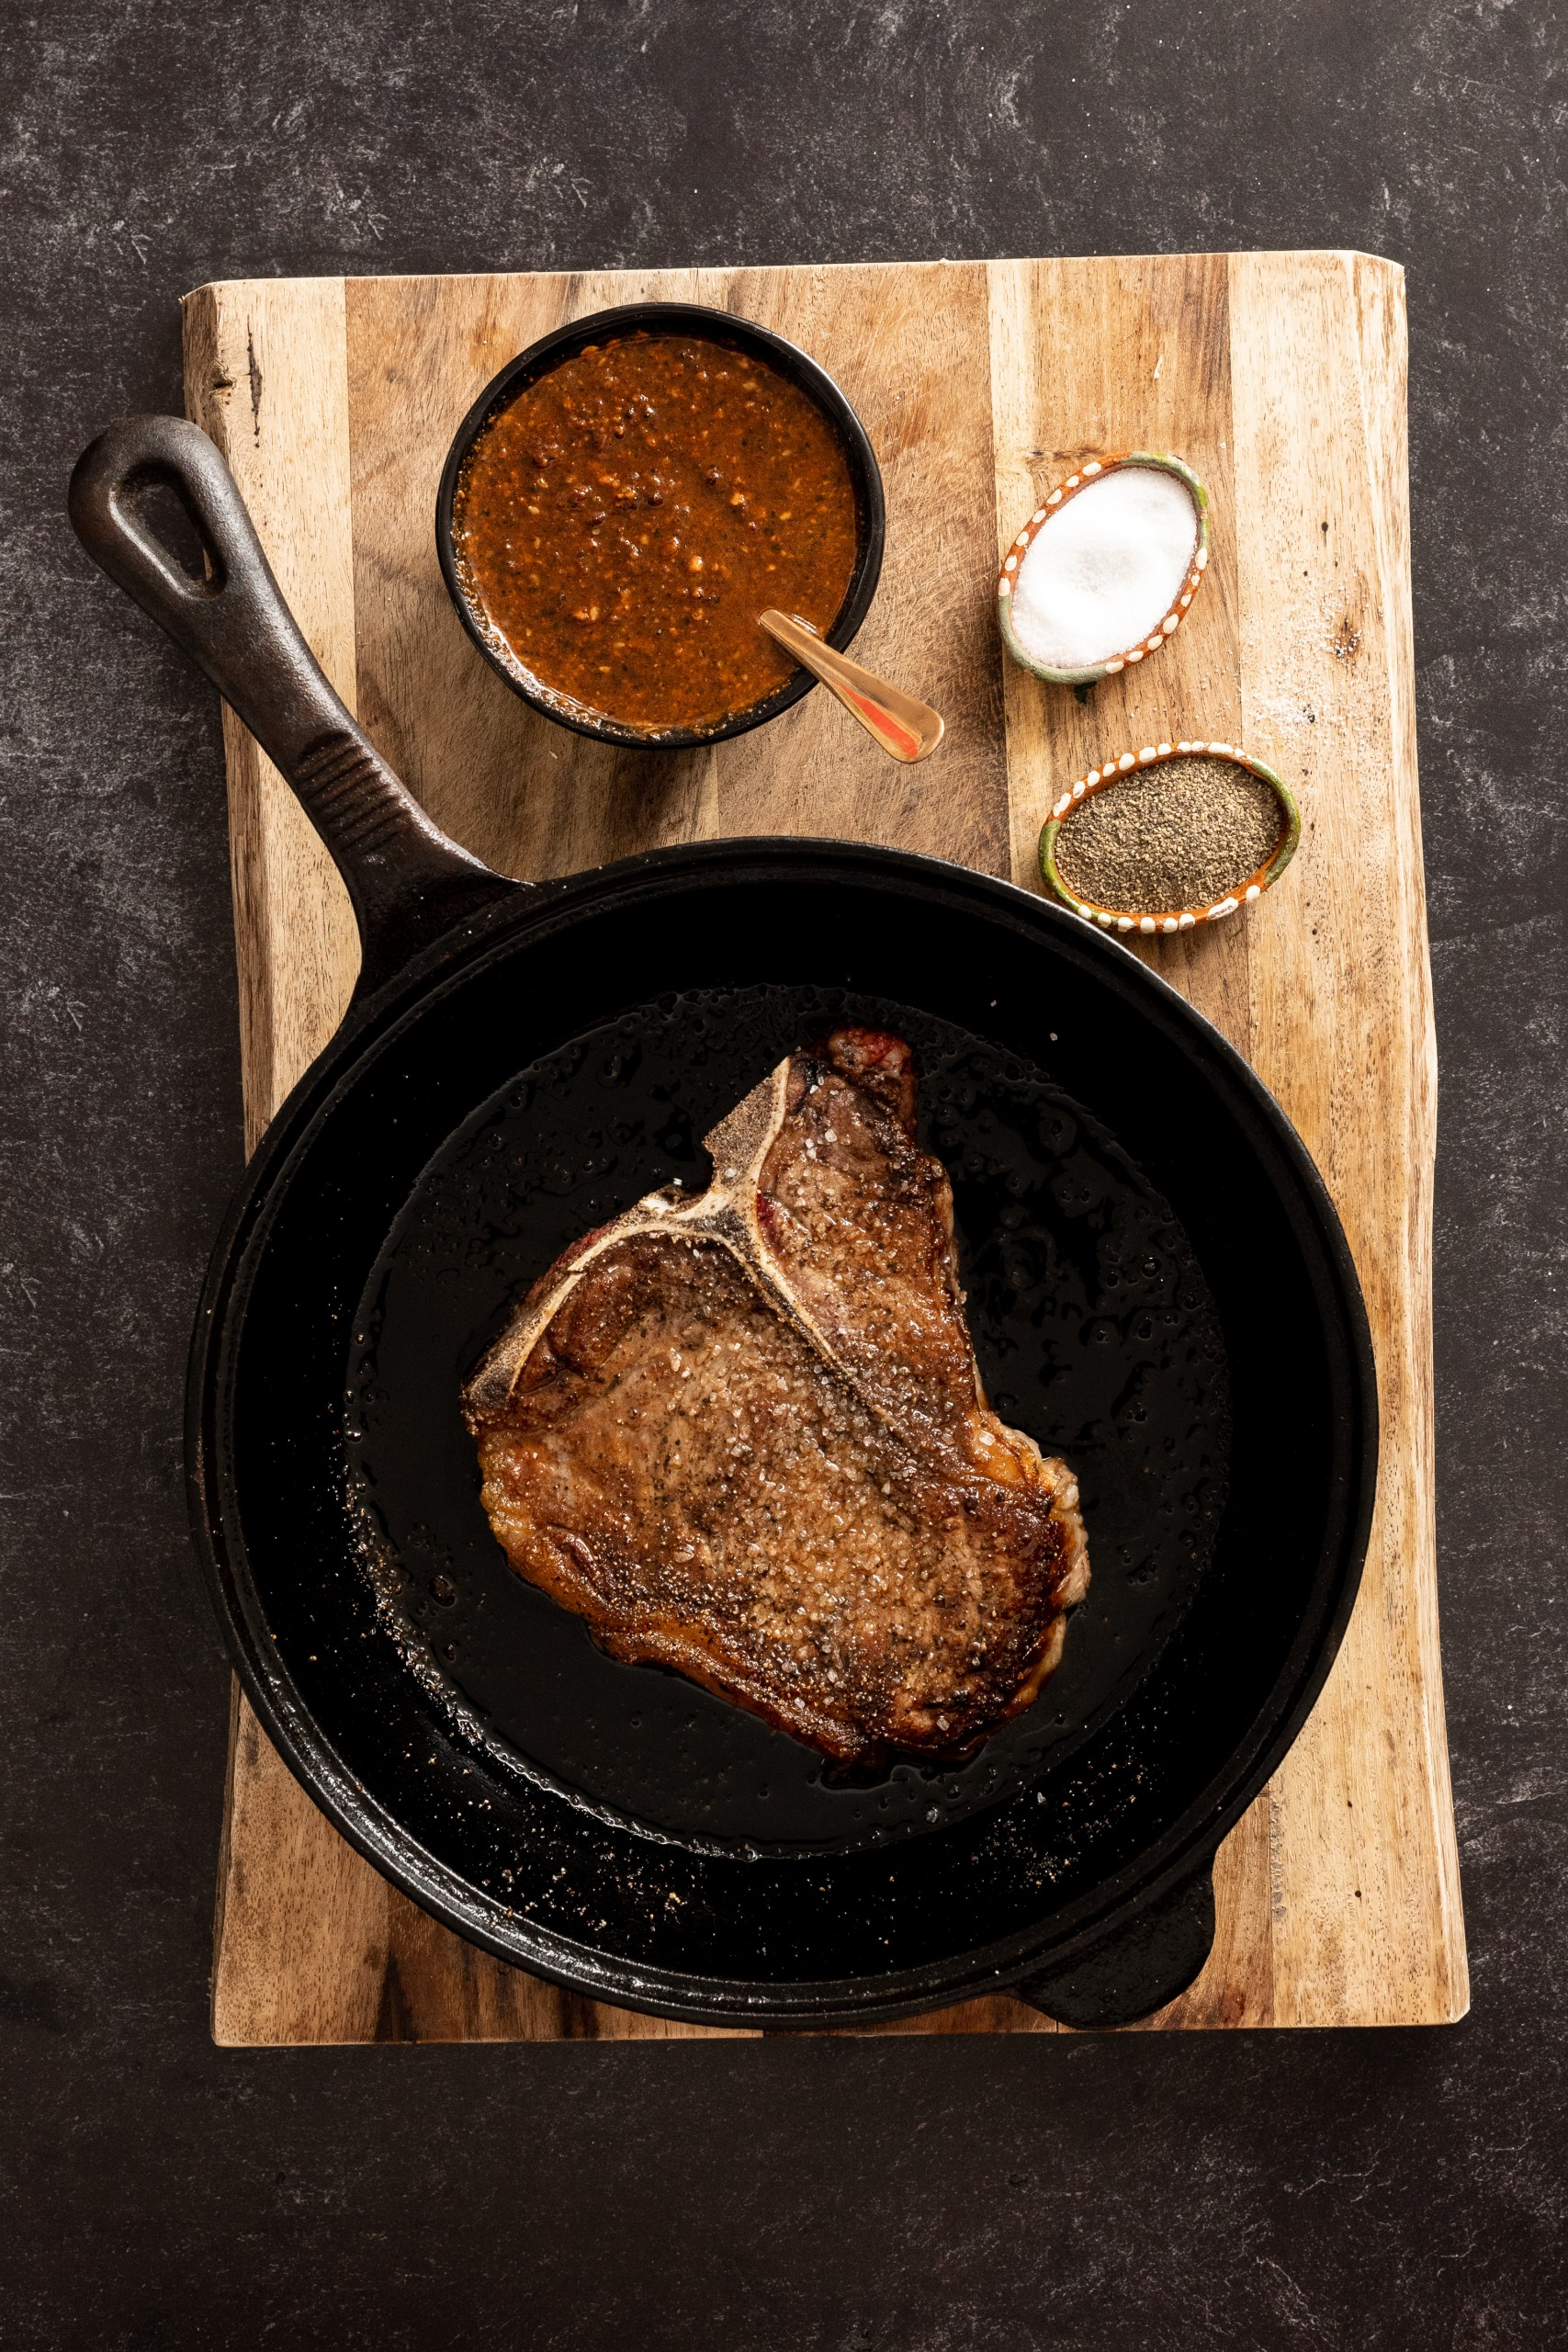 cooking steaks in a cast iron skillet